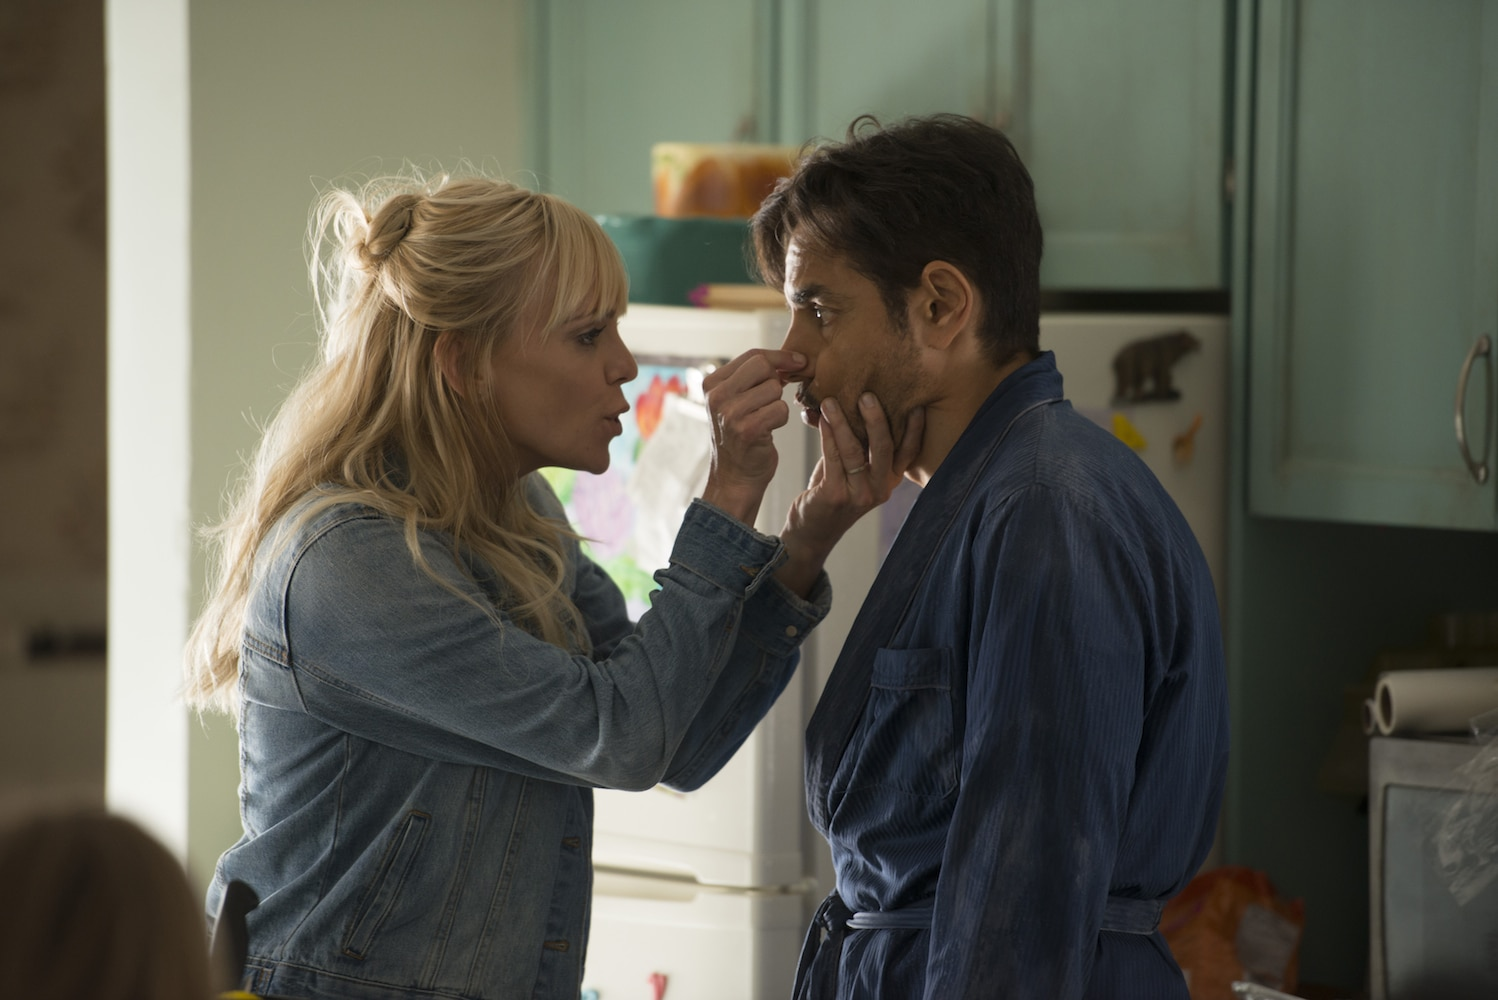 TRAILER: Eugenio Derbez Takes on Goldie Hawn's Role in Remake of 'Overboard'